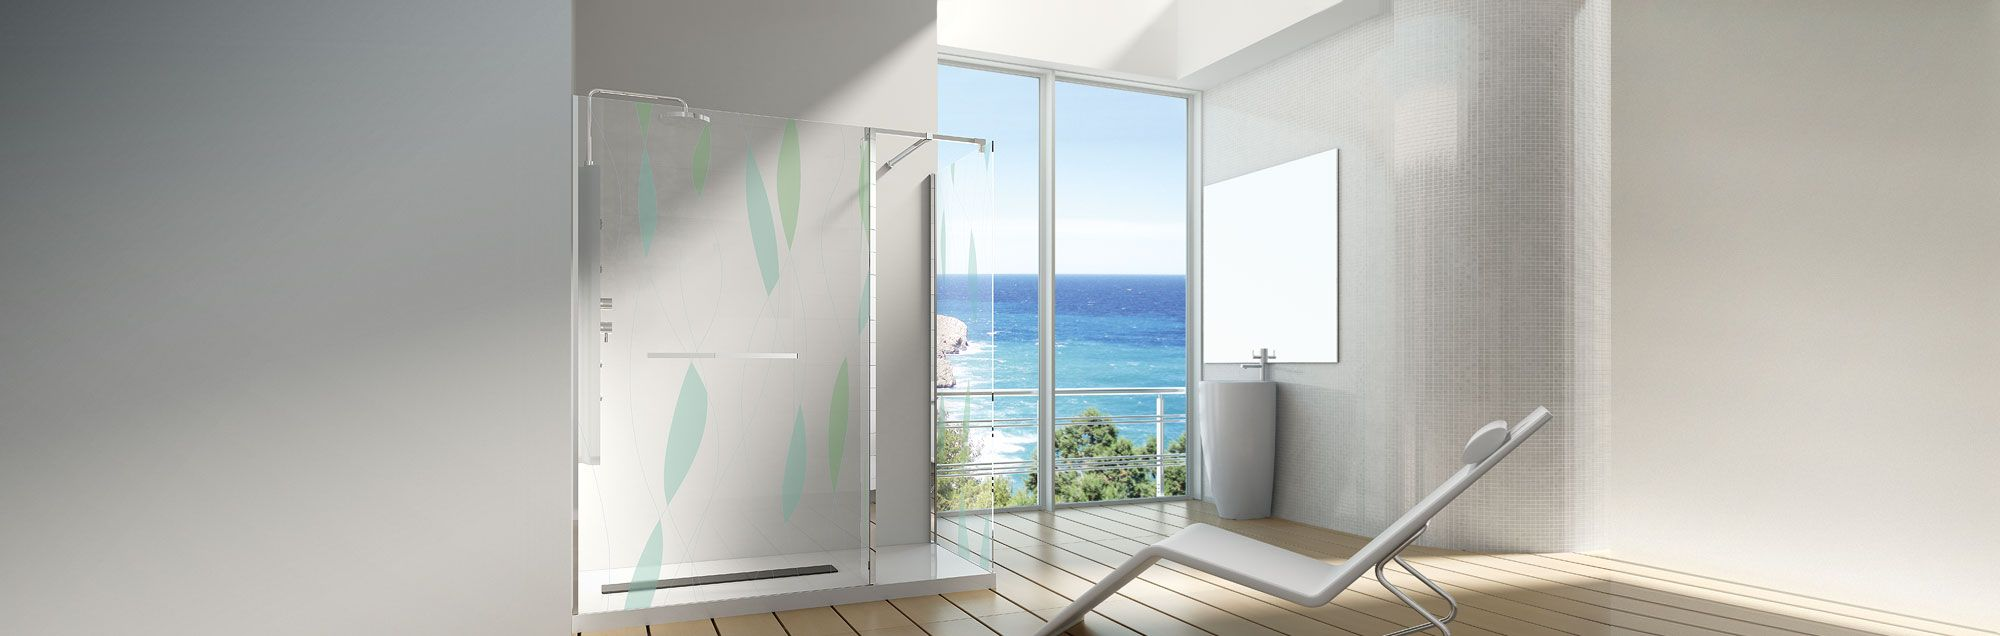 Alhambra Collection walk-in bathroom enclosures